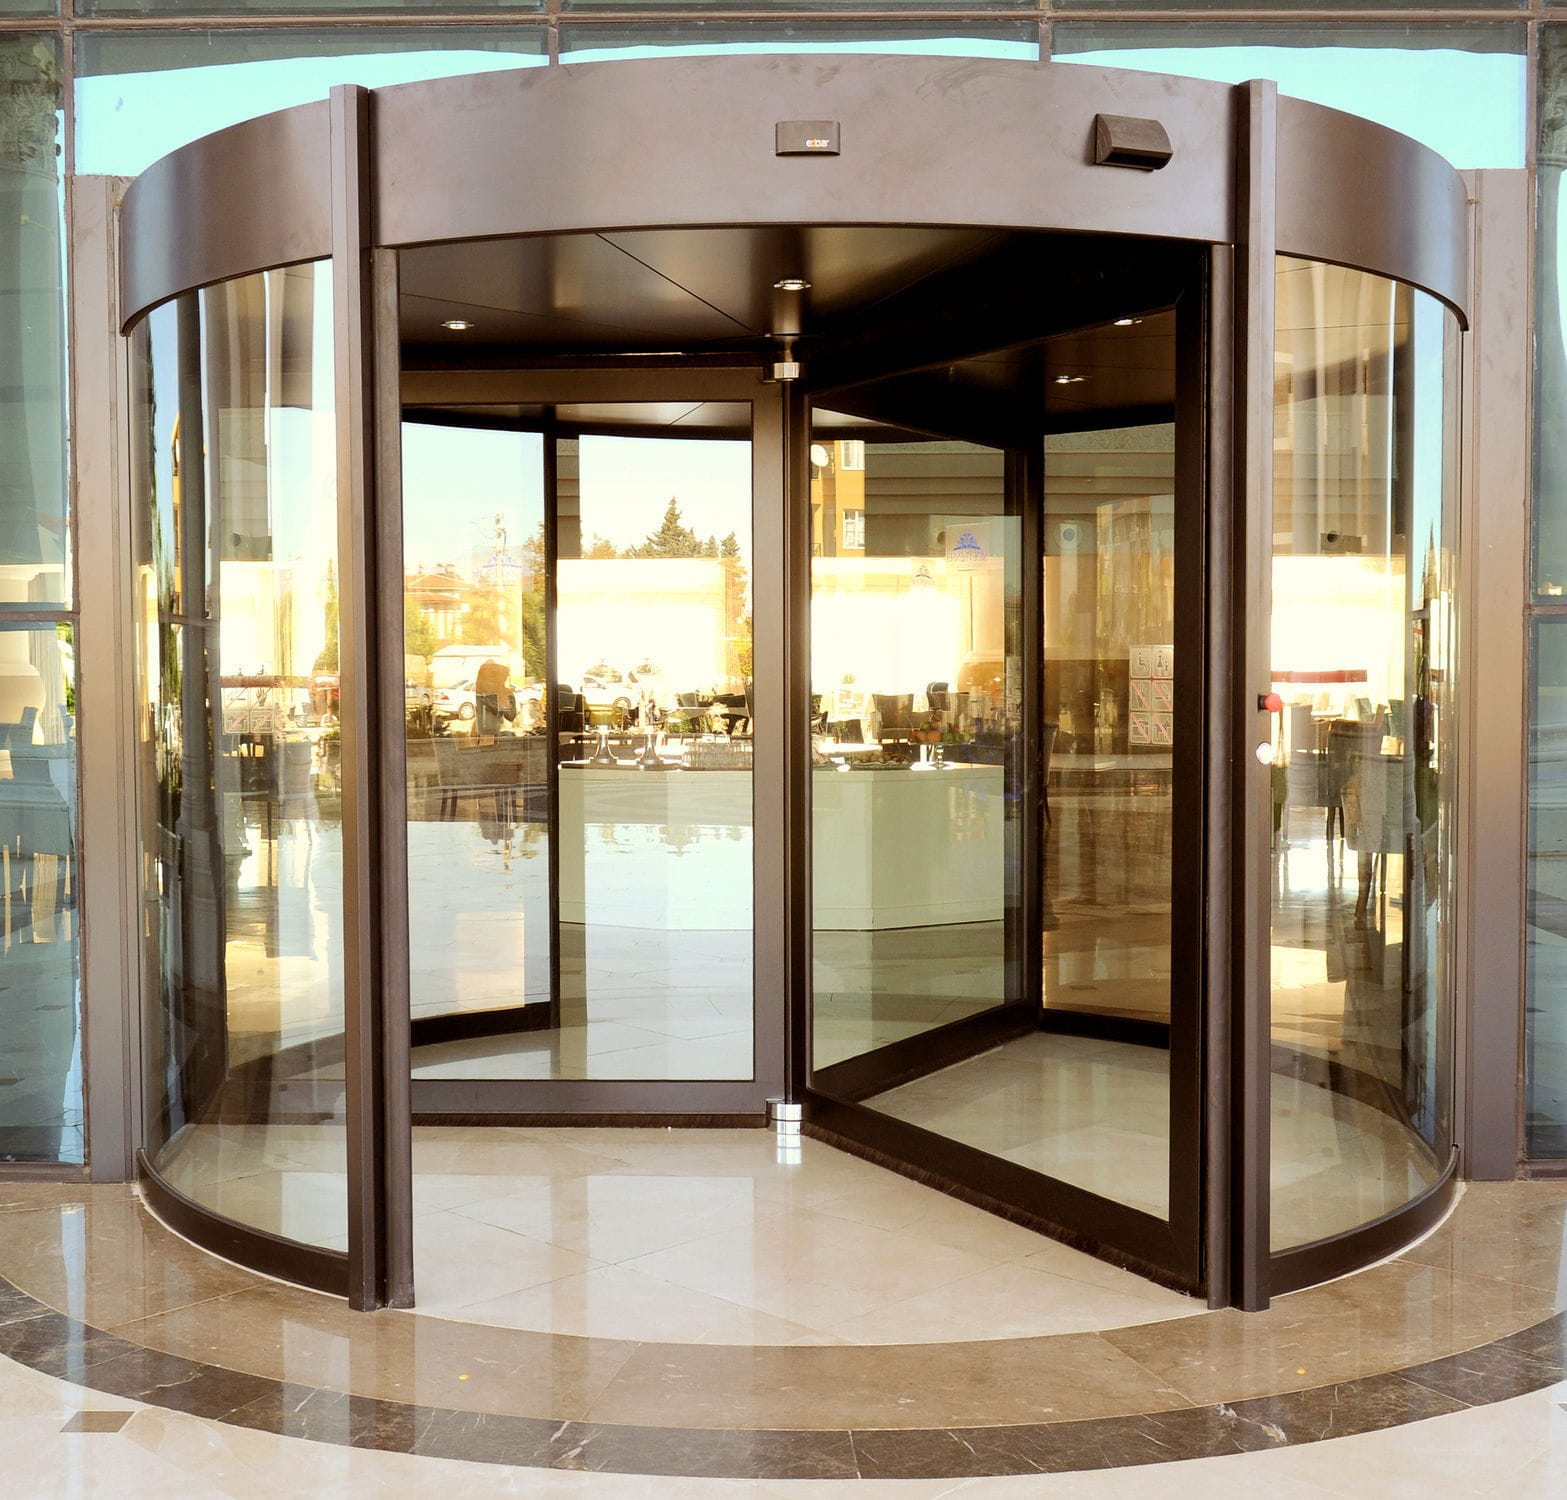 Revolving door / entry / aluminum / security MAXI Edora Automatic Door Systems ... & Revolving door / entry / aluminum / security - MAXI - Edora ... Pezcame.Com